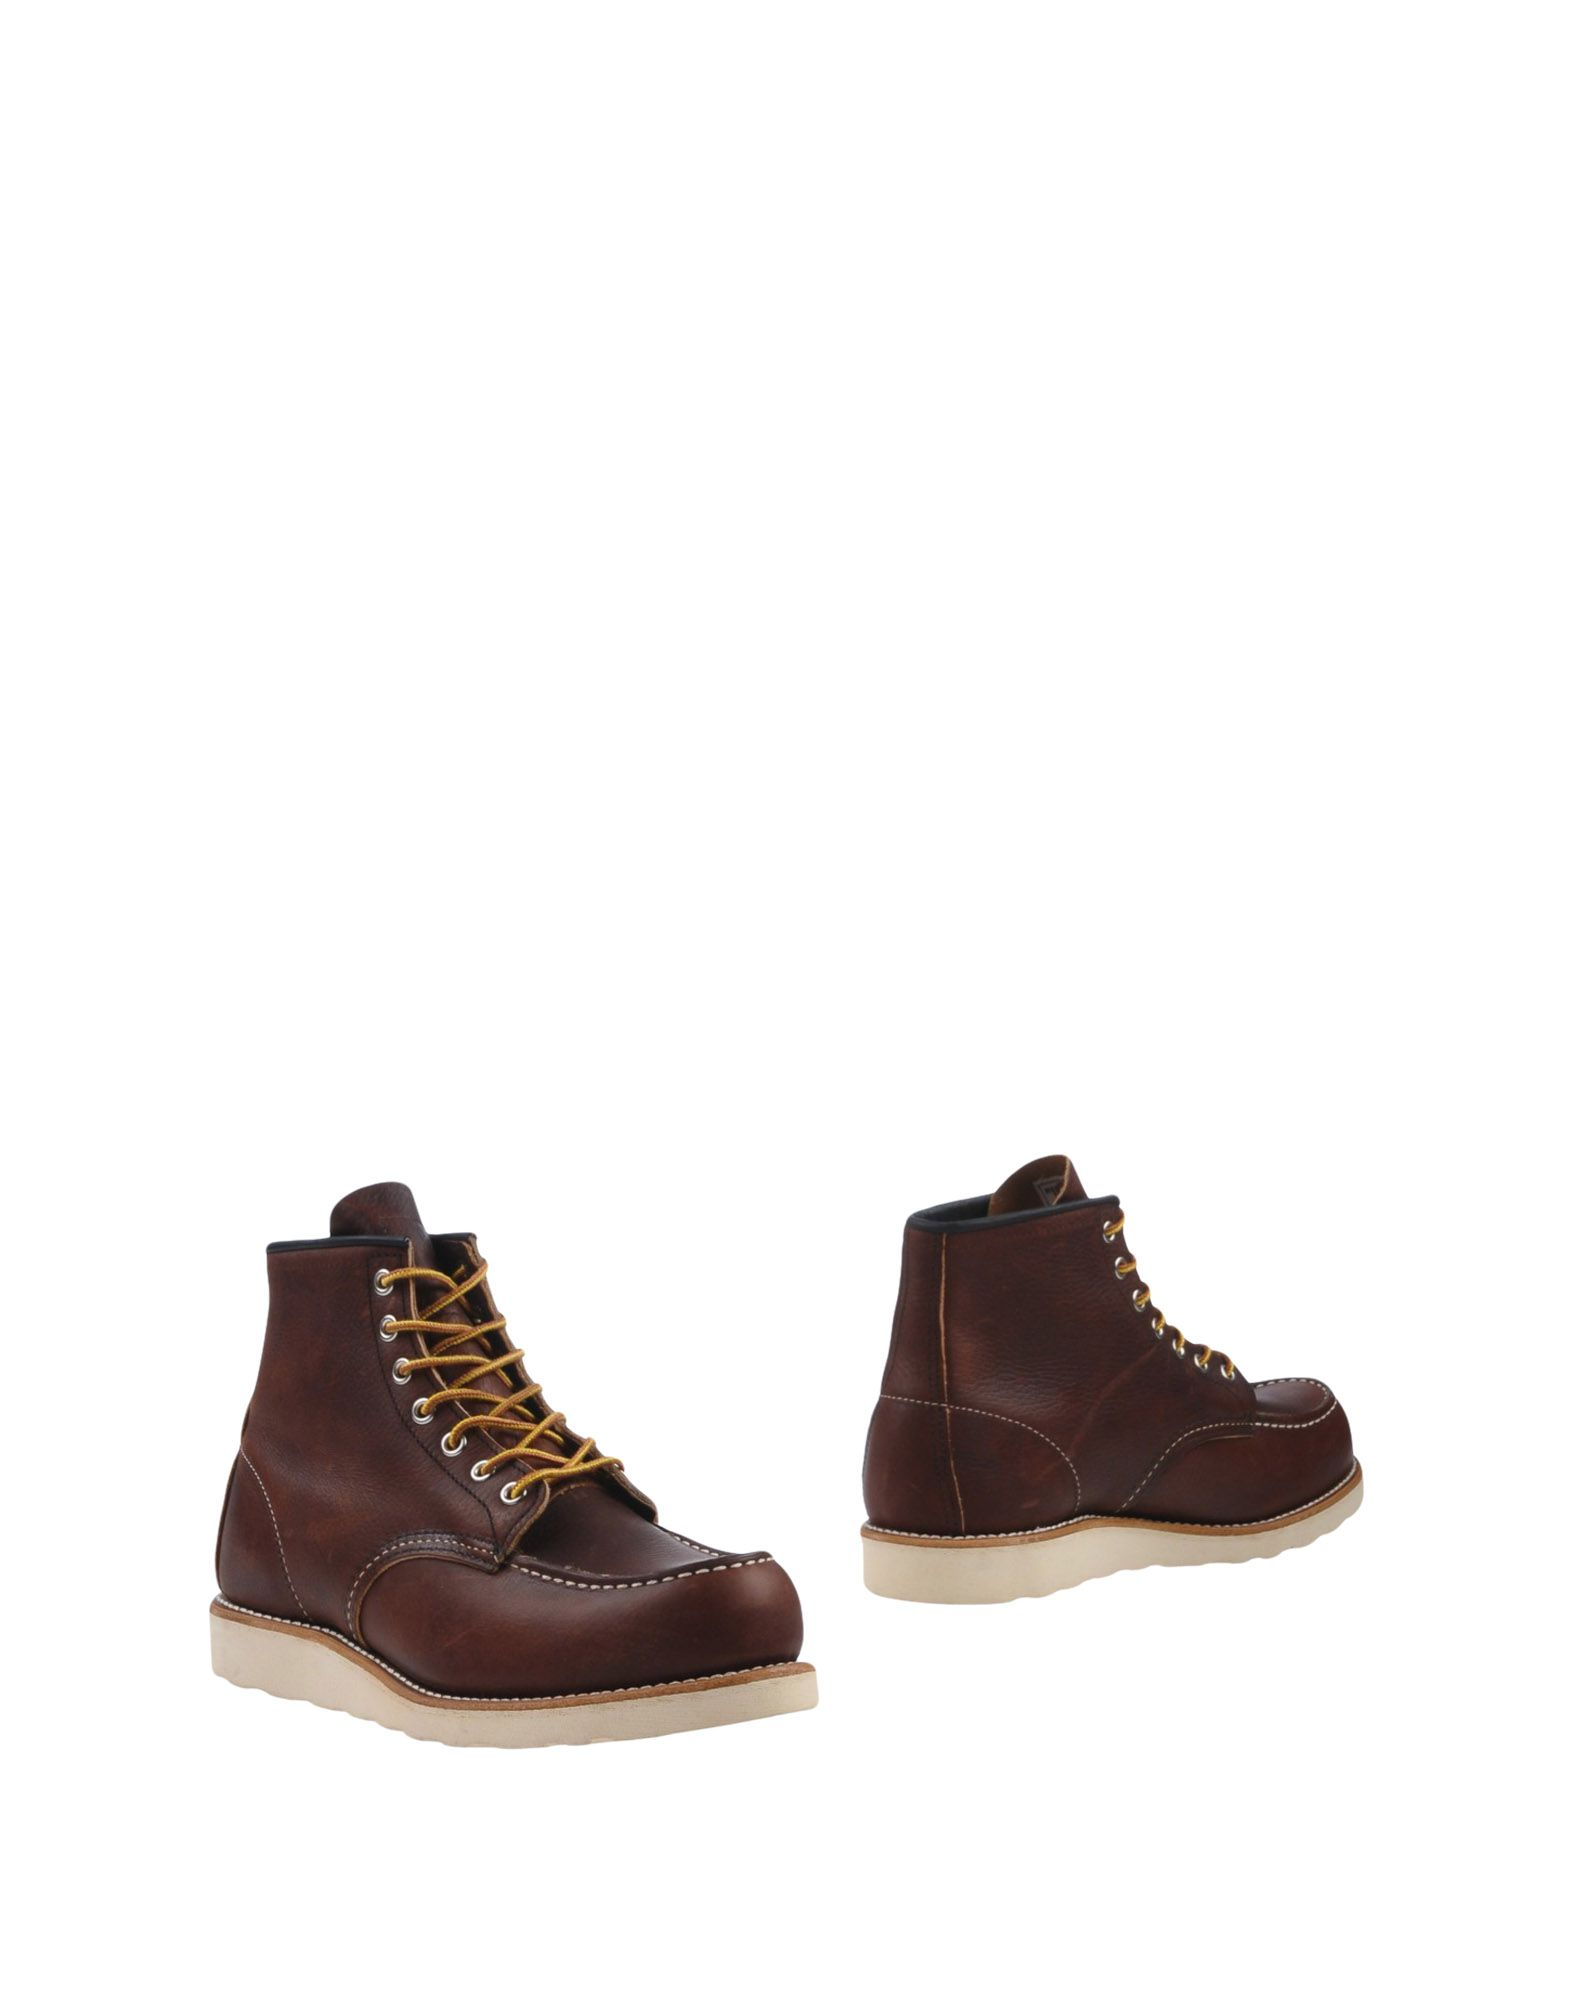 FOOTWEAR - Ankle boots on YOOX.COM Red Wing Shoes ChZwbVpW